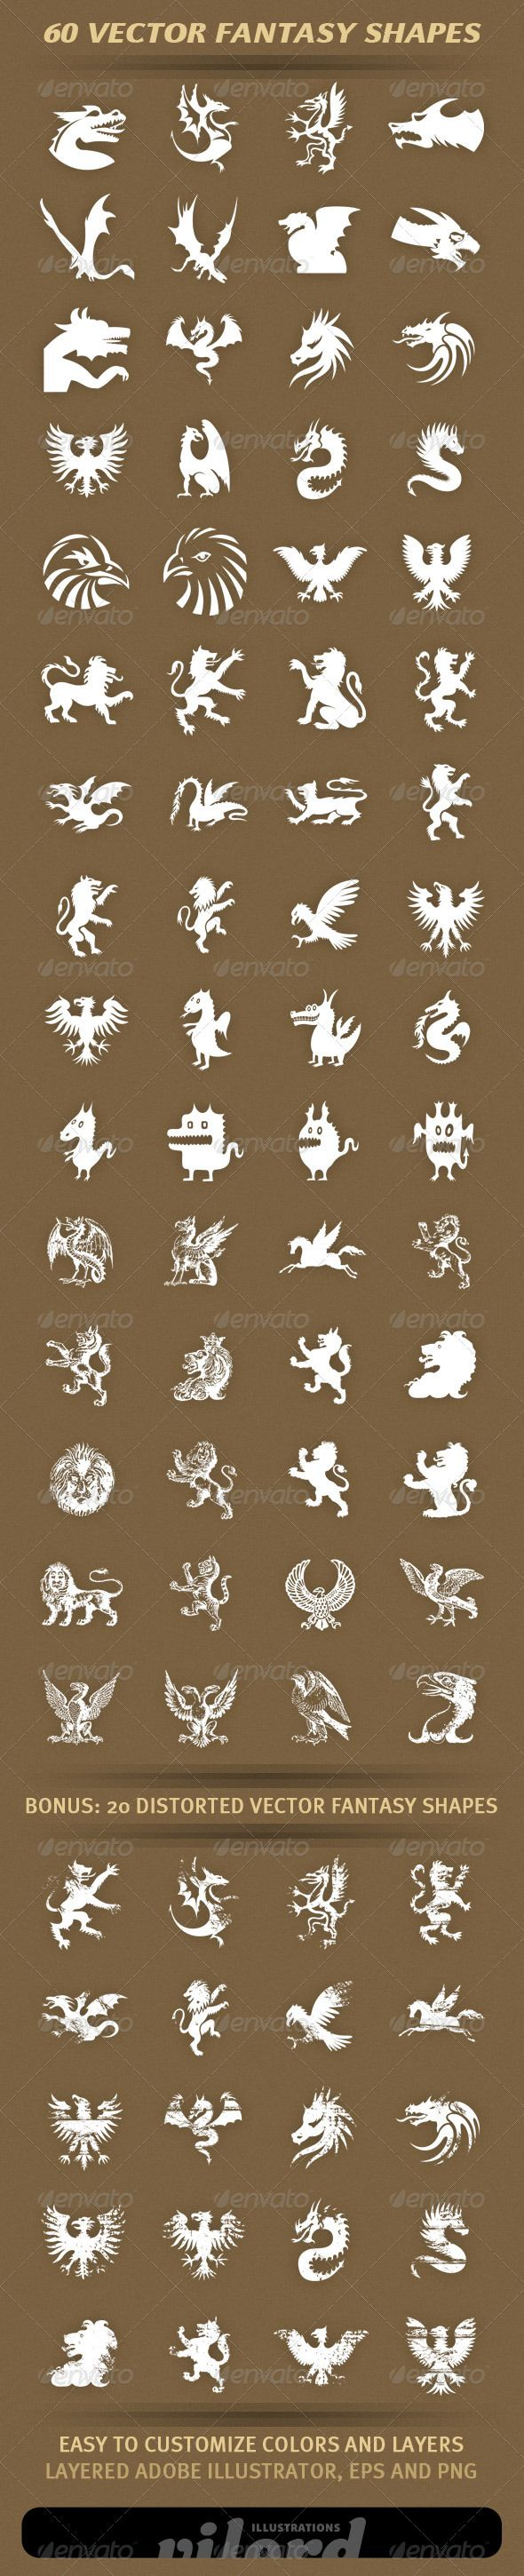 "60 Fantasy Shapes  #GraphicRiver         Set of 40 vector fantasy creature shapes for your graphic designs. Great for print or web design! Enjoy   	 Adobe Illustrator is main file and ""fully editable"". Also transparent PNG and EPS files in the package.  	 BONUS : 20 distorted fantasy shapes also included.     Created: 28March12 GraphicsFilesIncluded: TransparentPNG #VectorEPS #AIIllustrator Layered: Yes MinimumAdobeCSVersion: CS Tags: ancient #animals #creatures #crests #decoration #dragon"